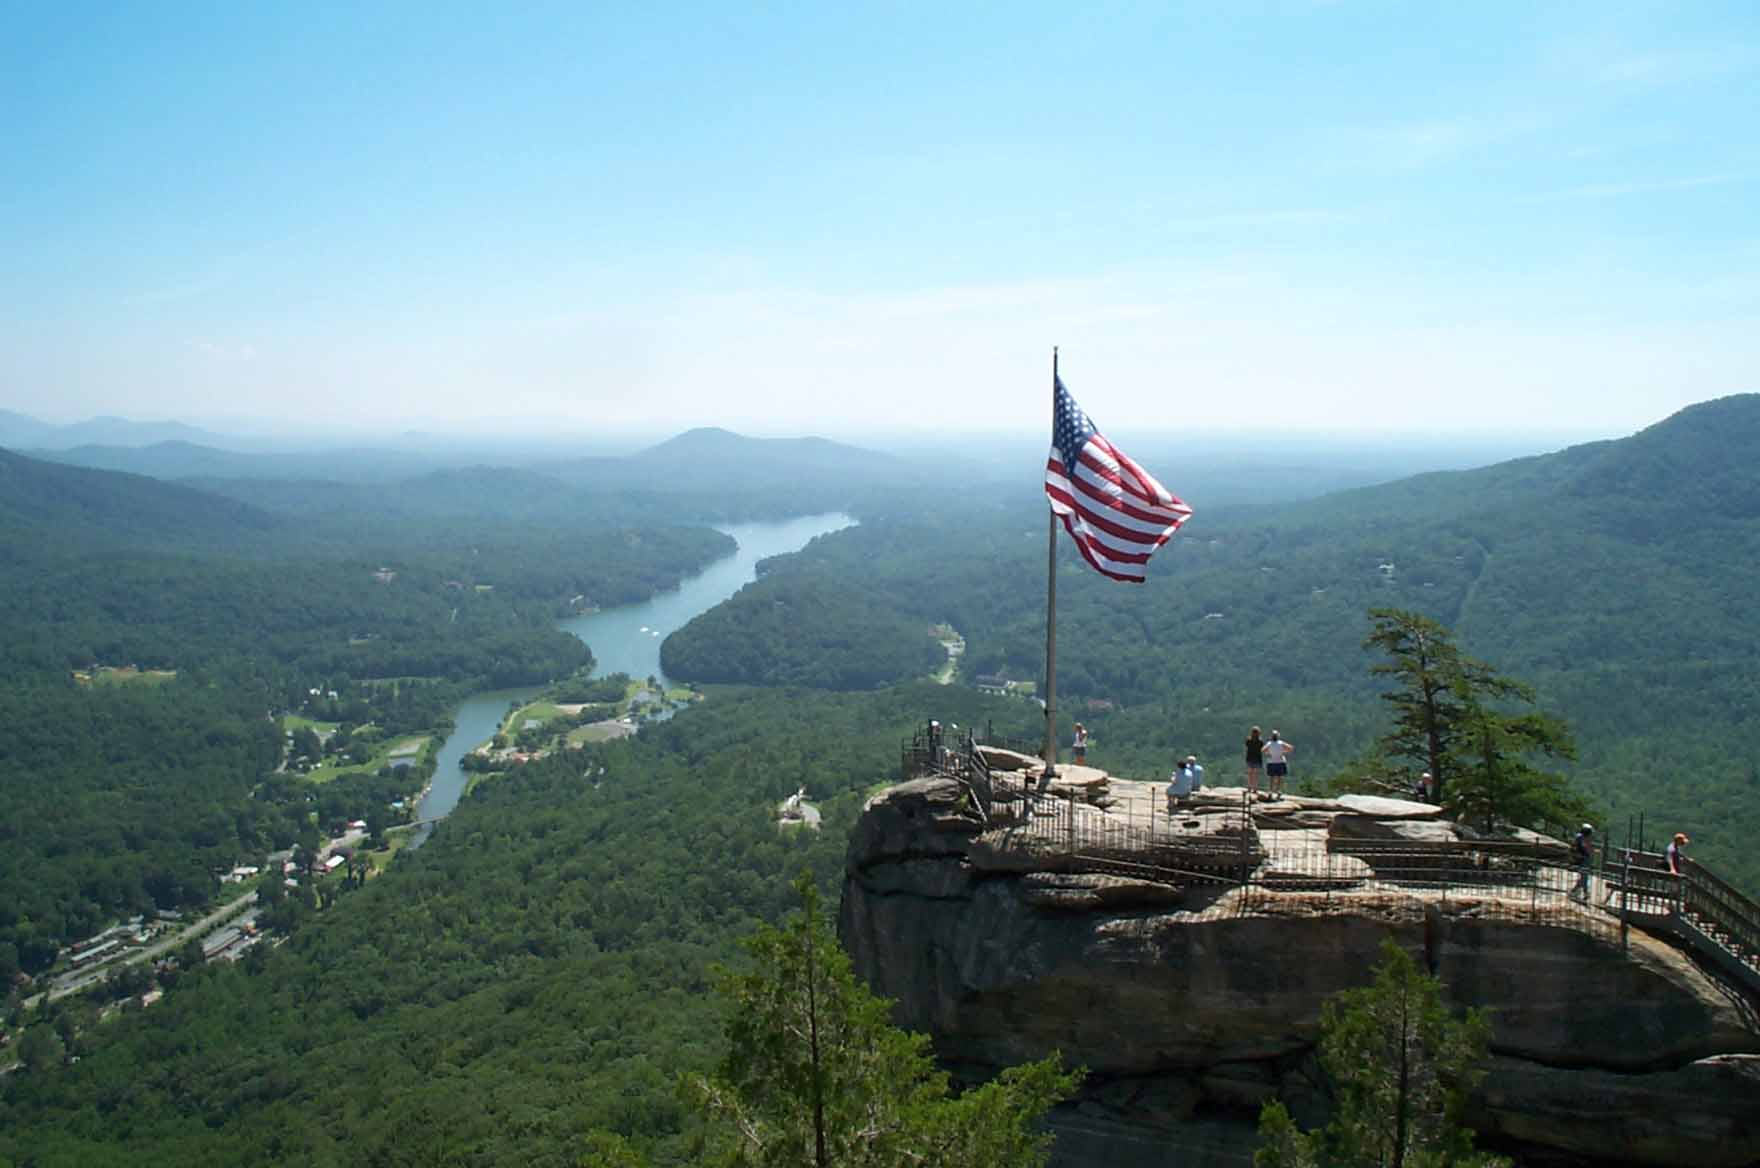 chimney rock senior personals A brand new website promoting chimney rock village is on its way a new website focused on chimney rock village is being designed for.